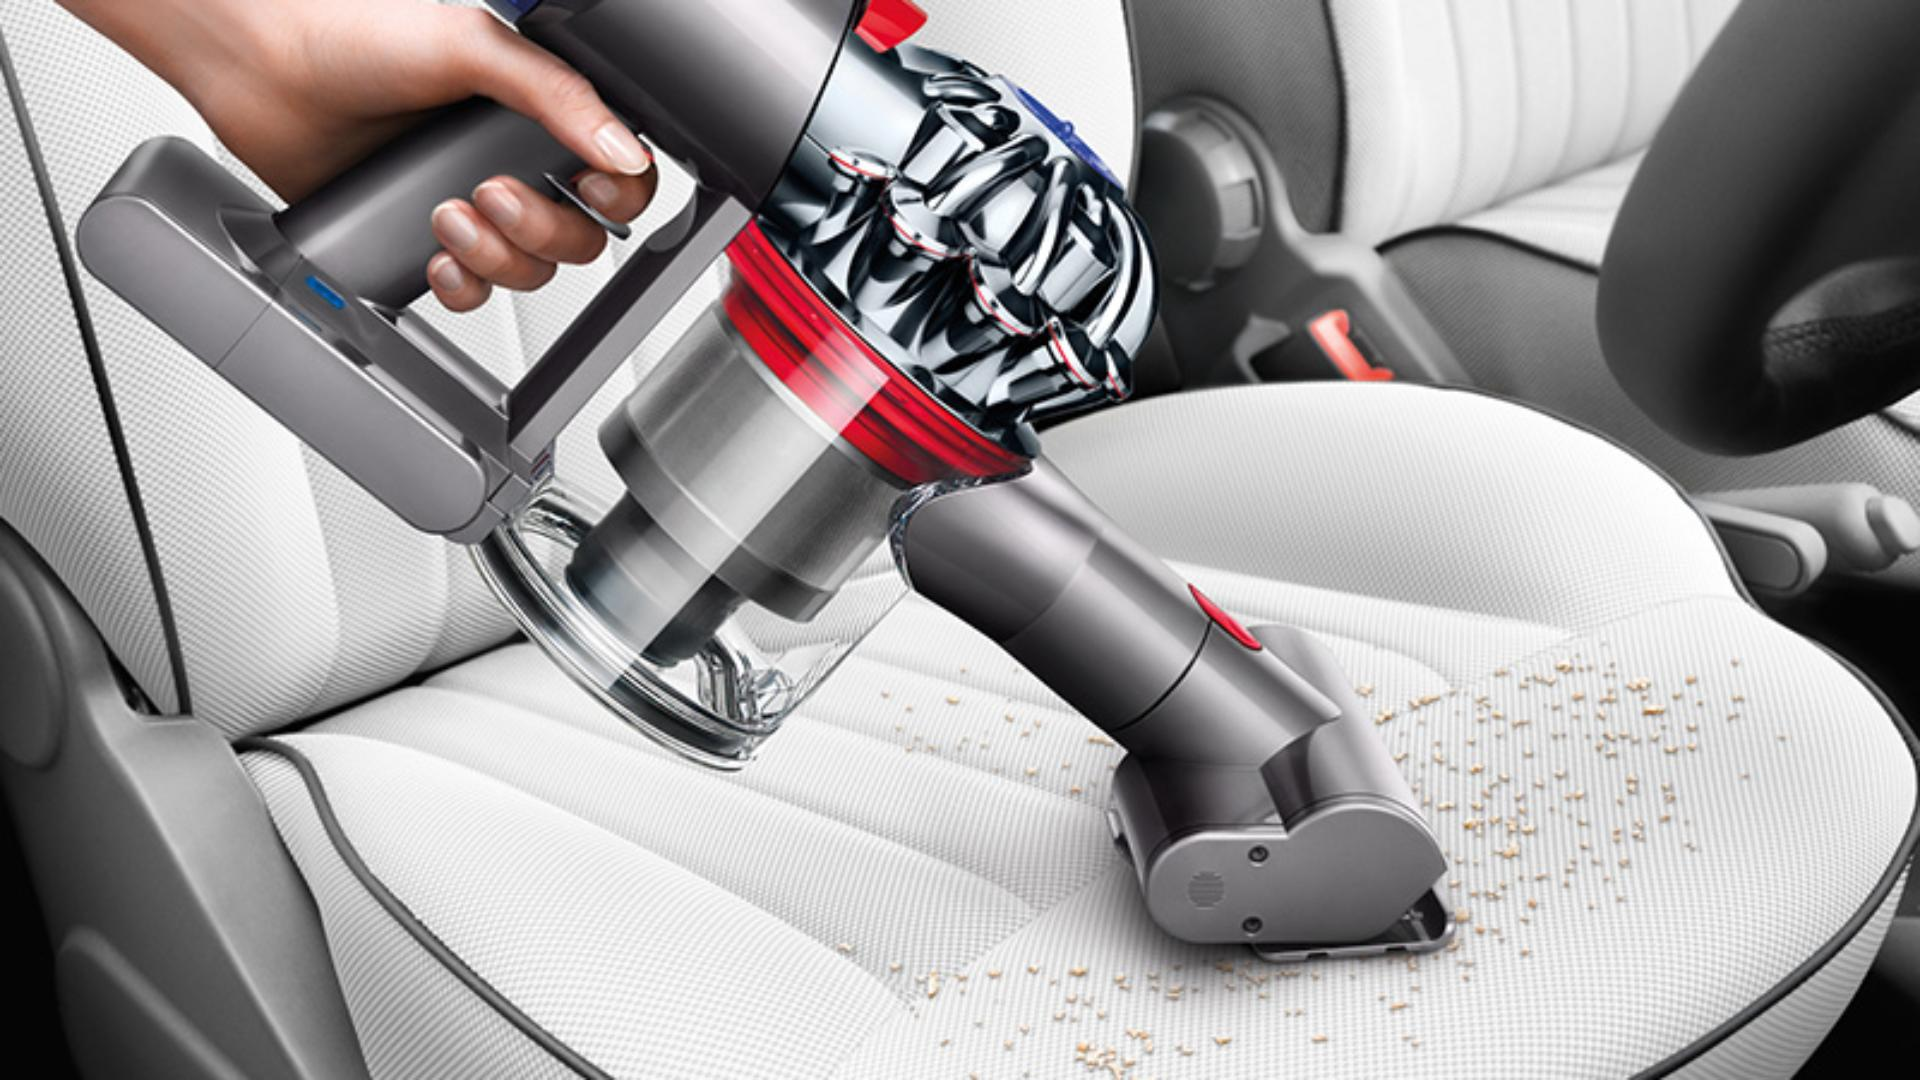 Using Dyson vacuum on car seat